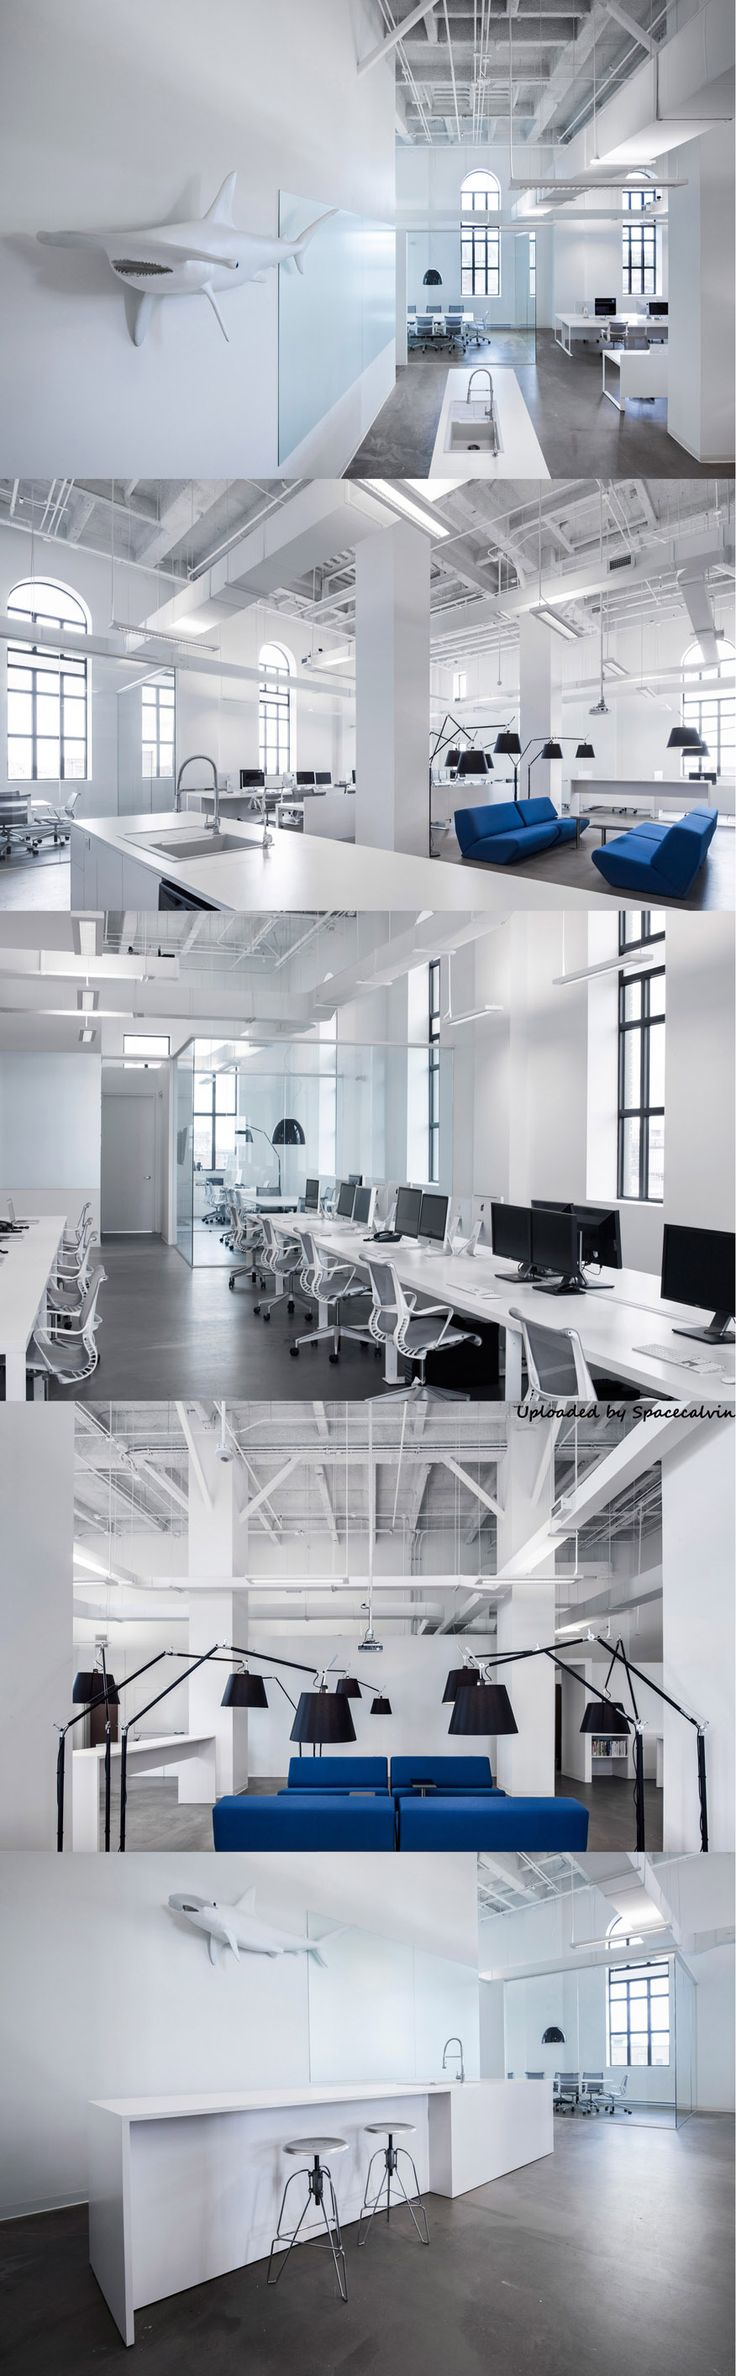 Blue Communications' Office Space by Jean Guy Chabauty & Anne Sophie Goneau